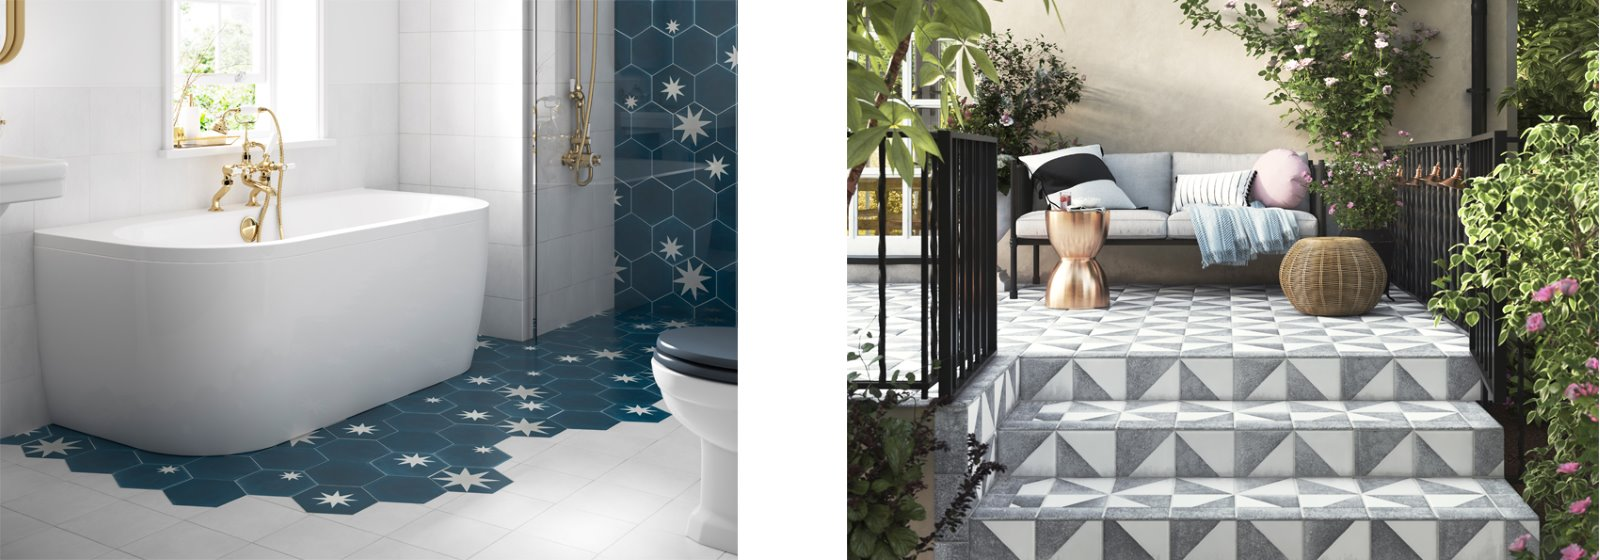 Playful patterned tiles